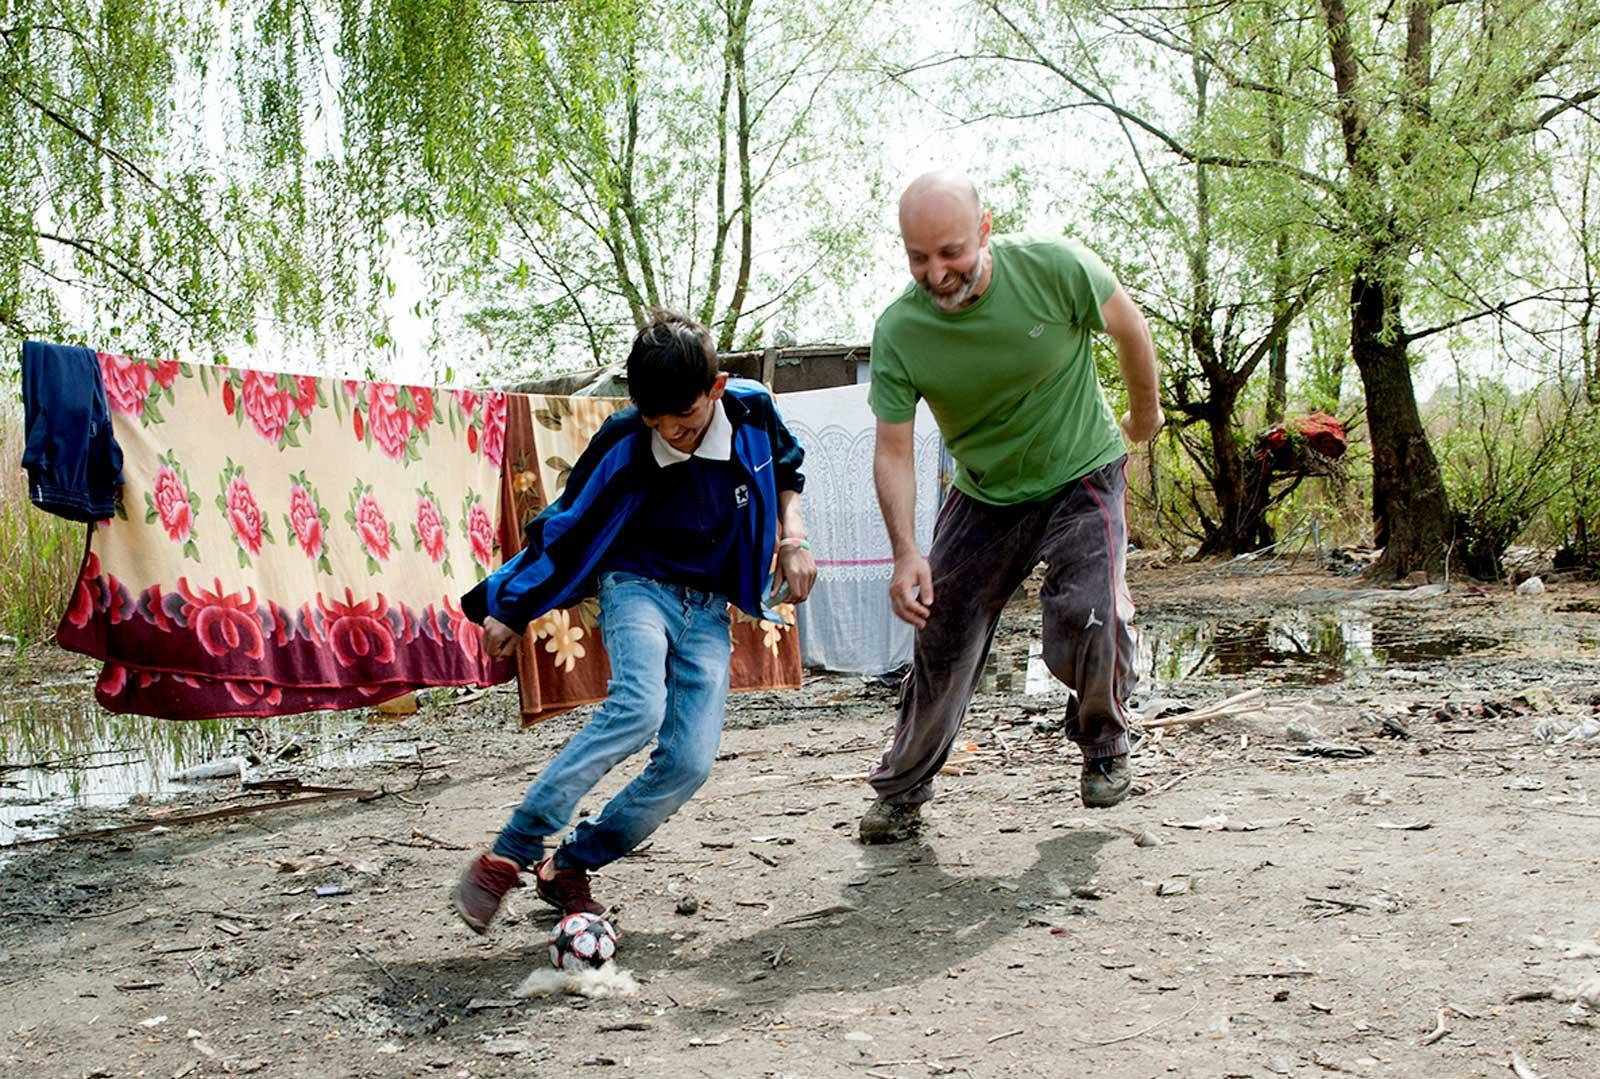 Valeriu and boy playing football